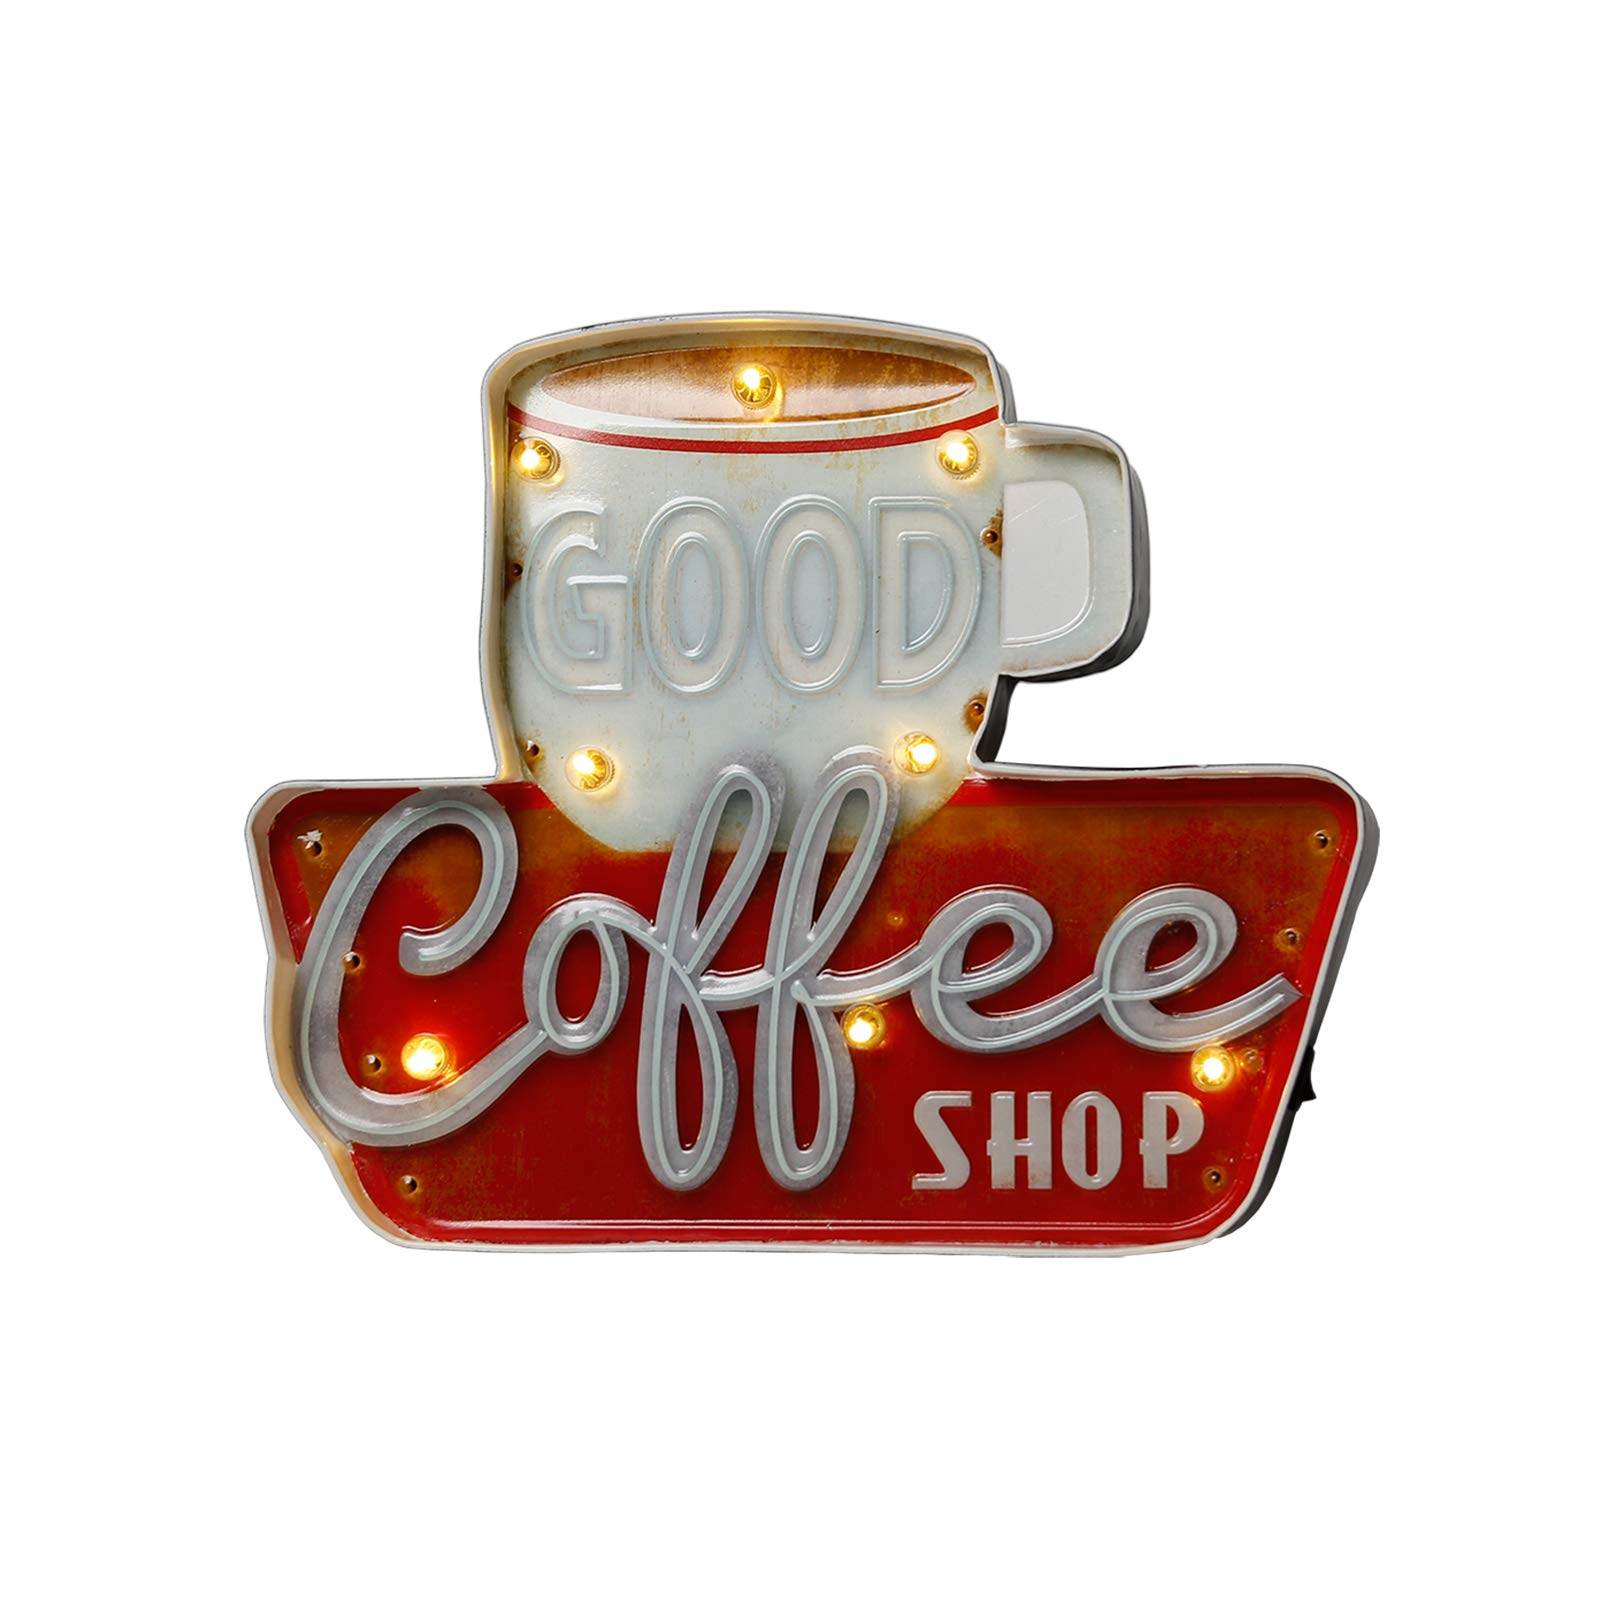 VerRich Coffee Wall Decorations Marquee: Metal Vintage Industrial Style Hanging Sign for